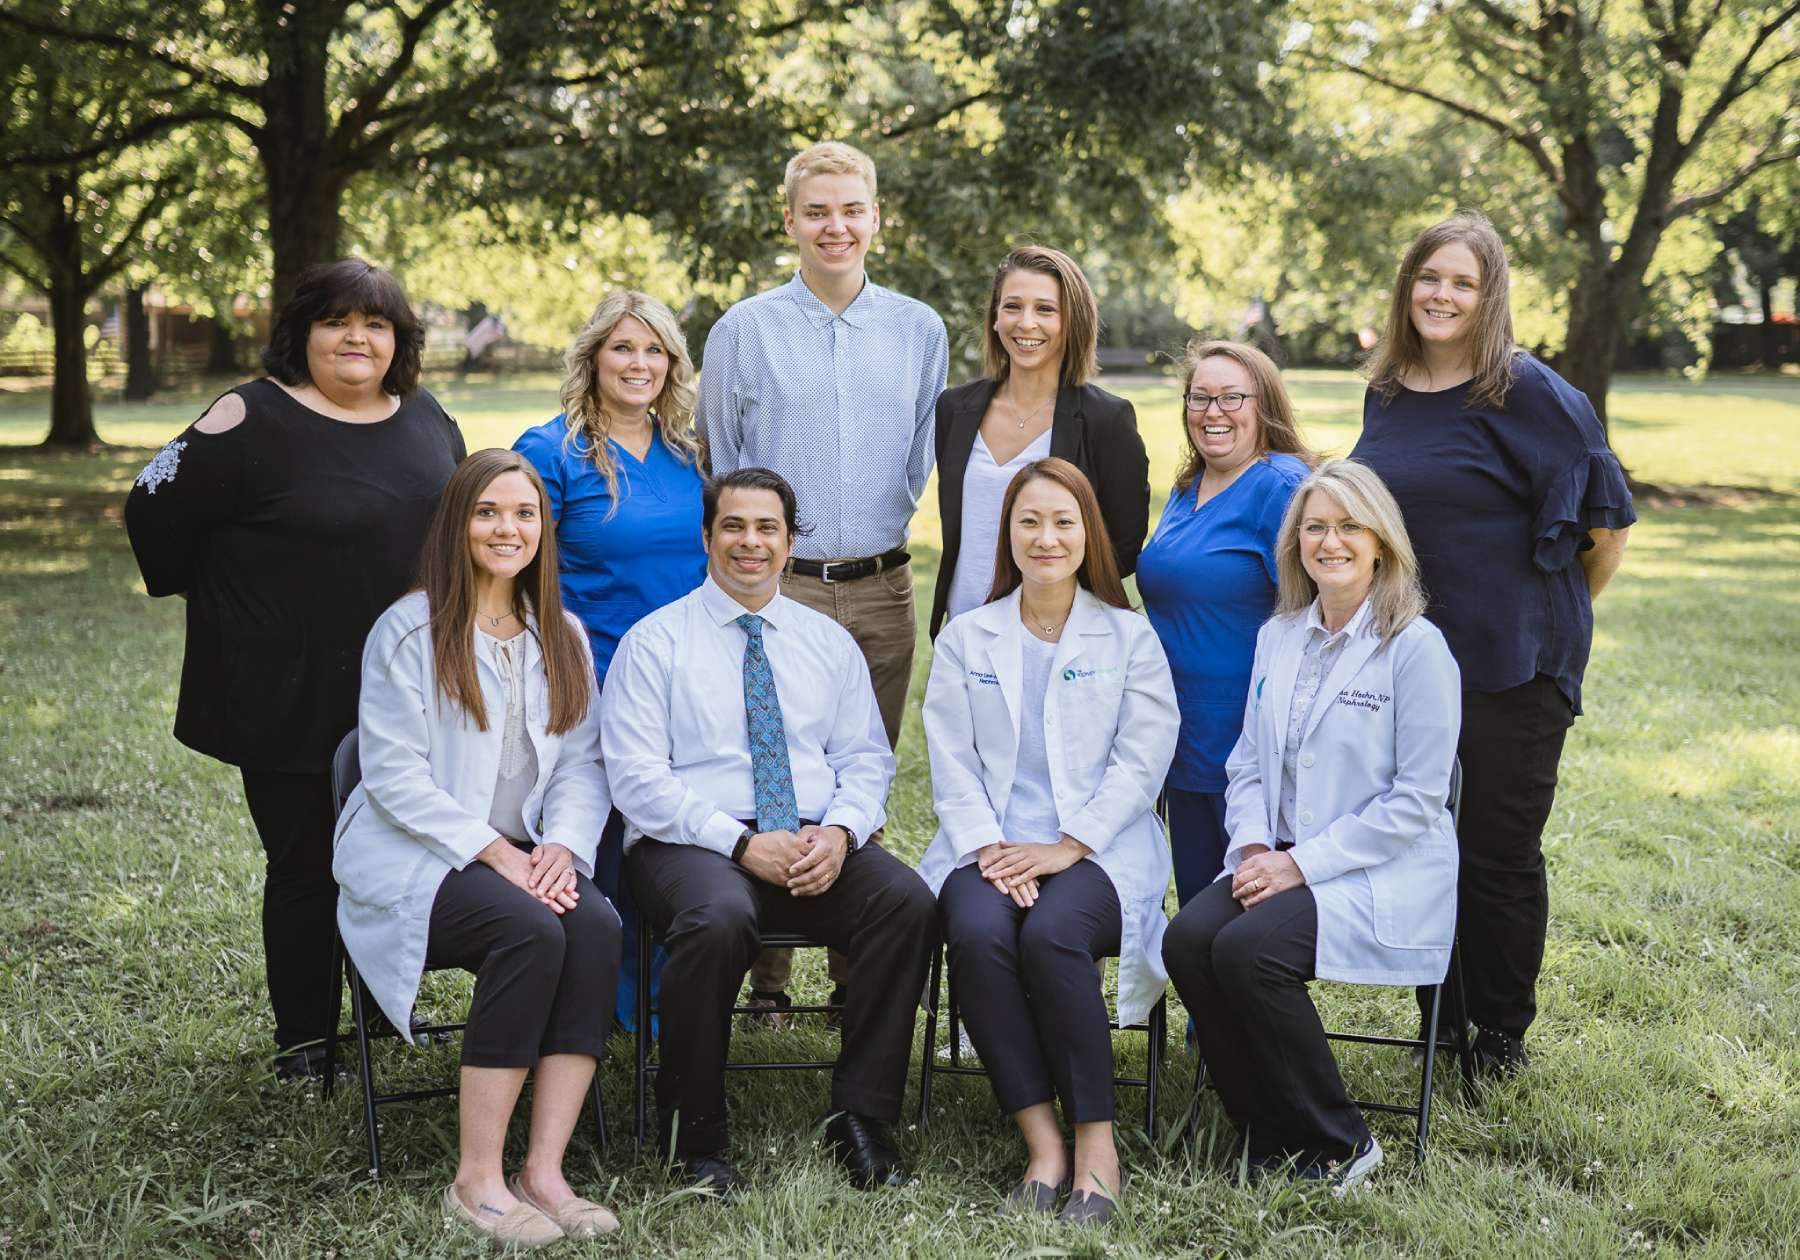 The Kidney Experts Group Photo